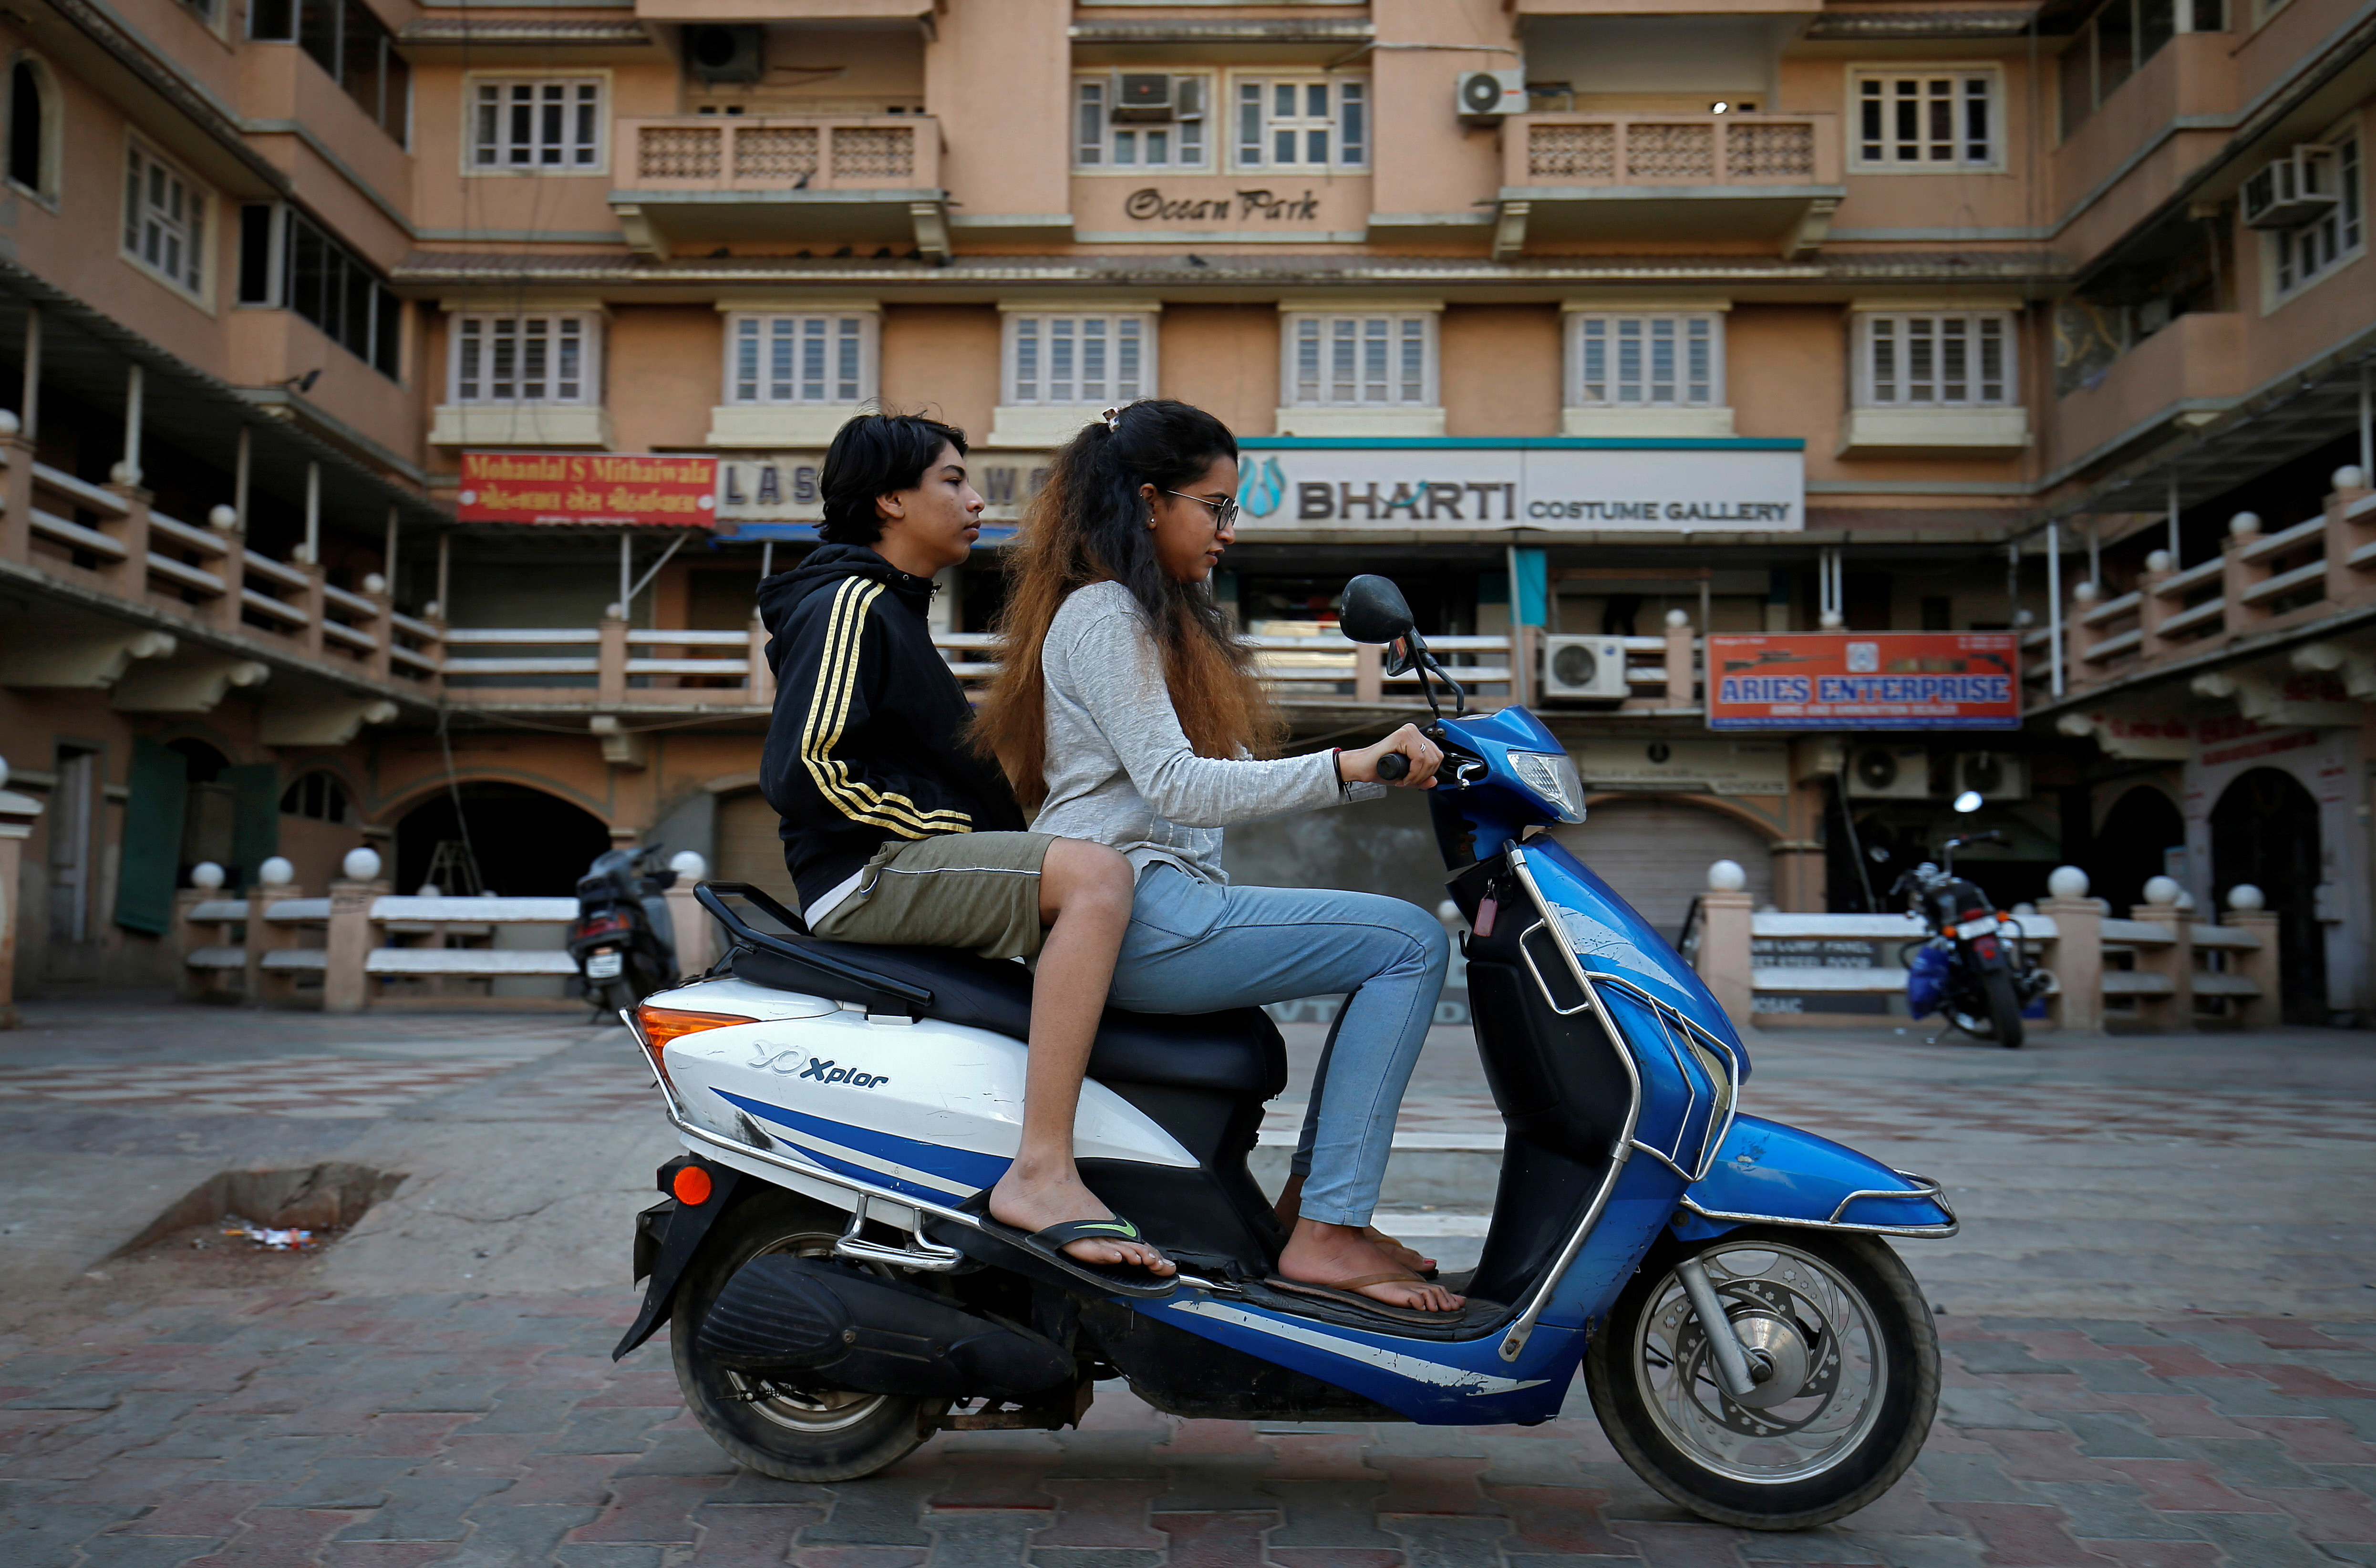 Girls ride an electric scooter in Ahmedabad, India, December 30, 2018. Picture taken December 30, 2018. REUTERS/Amit Dave - RC1DA84A58B0